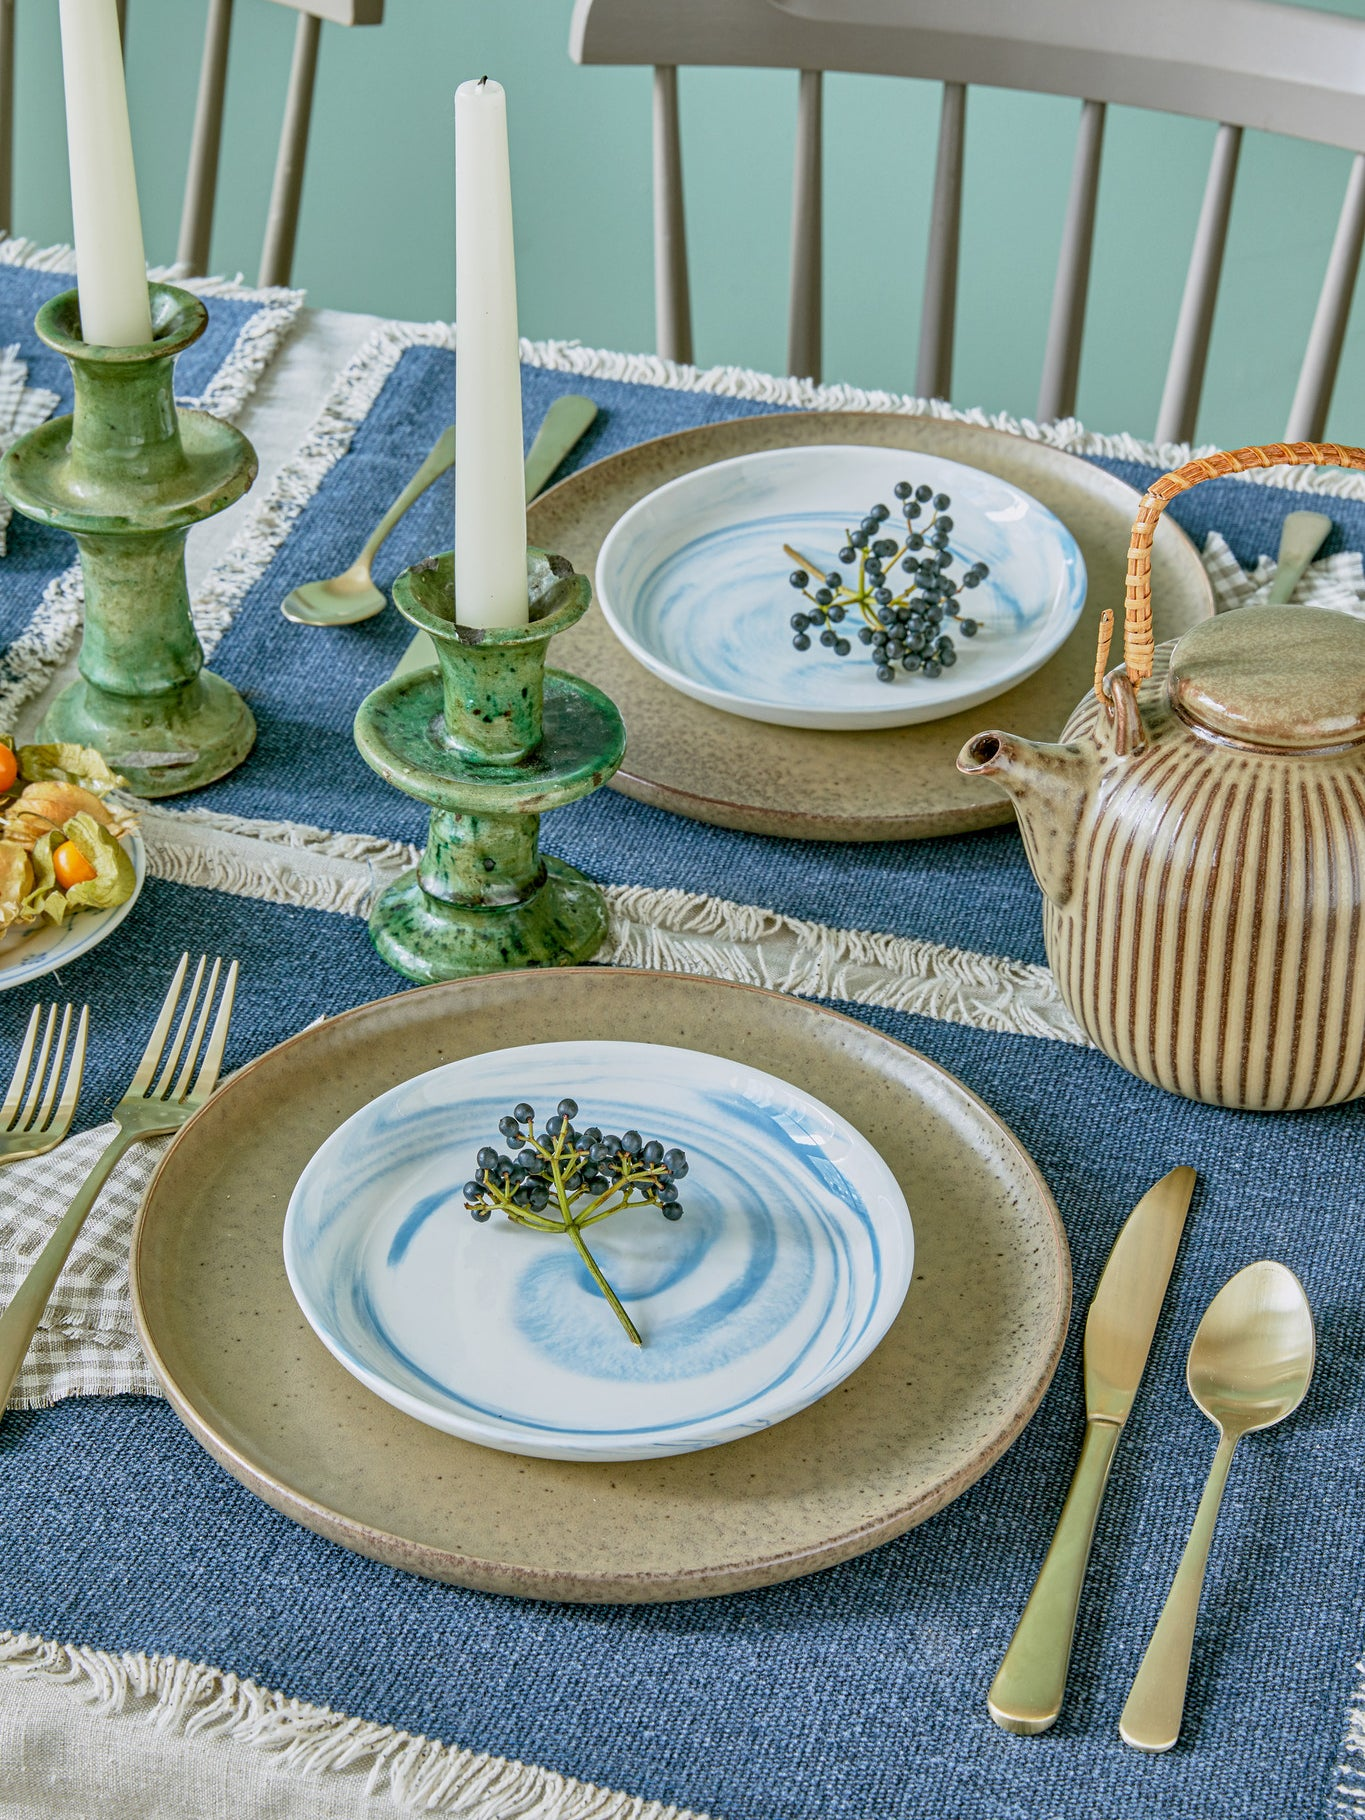 California Beaches Inspired Our Associate Style Editor's Holiday Table